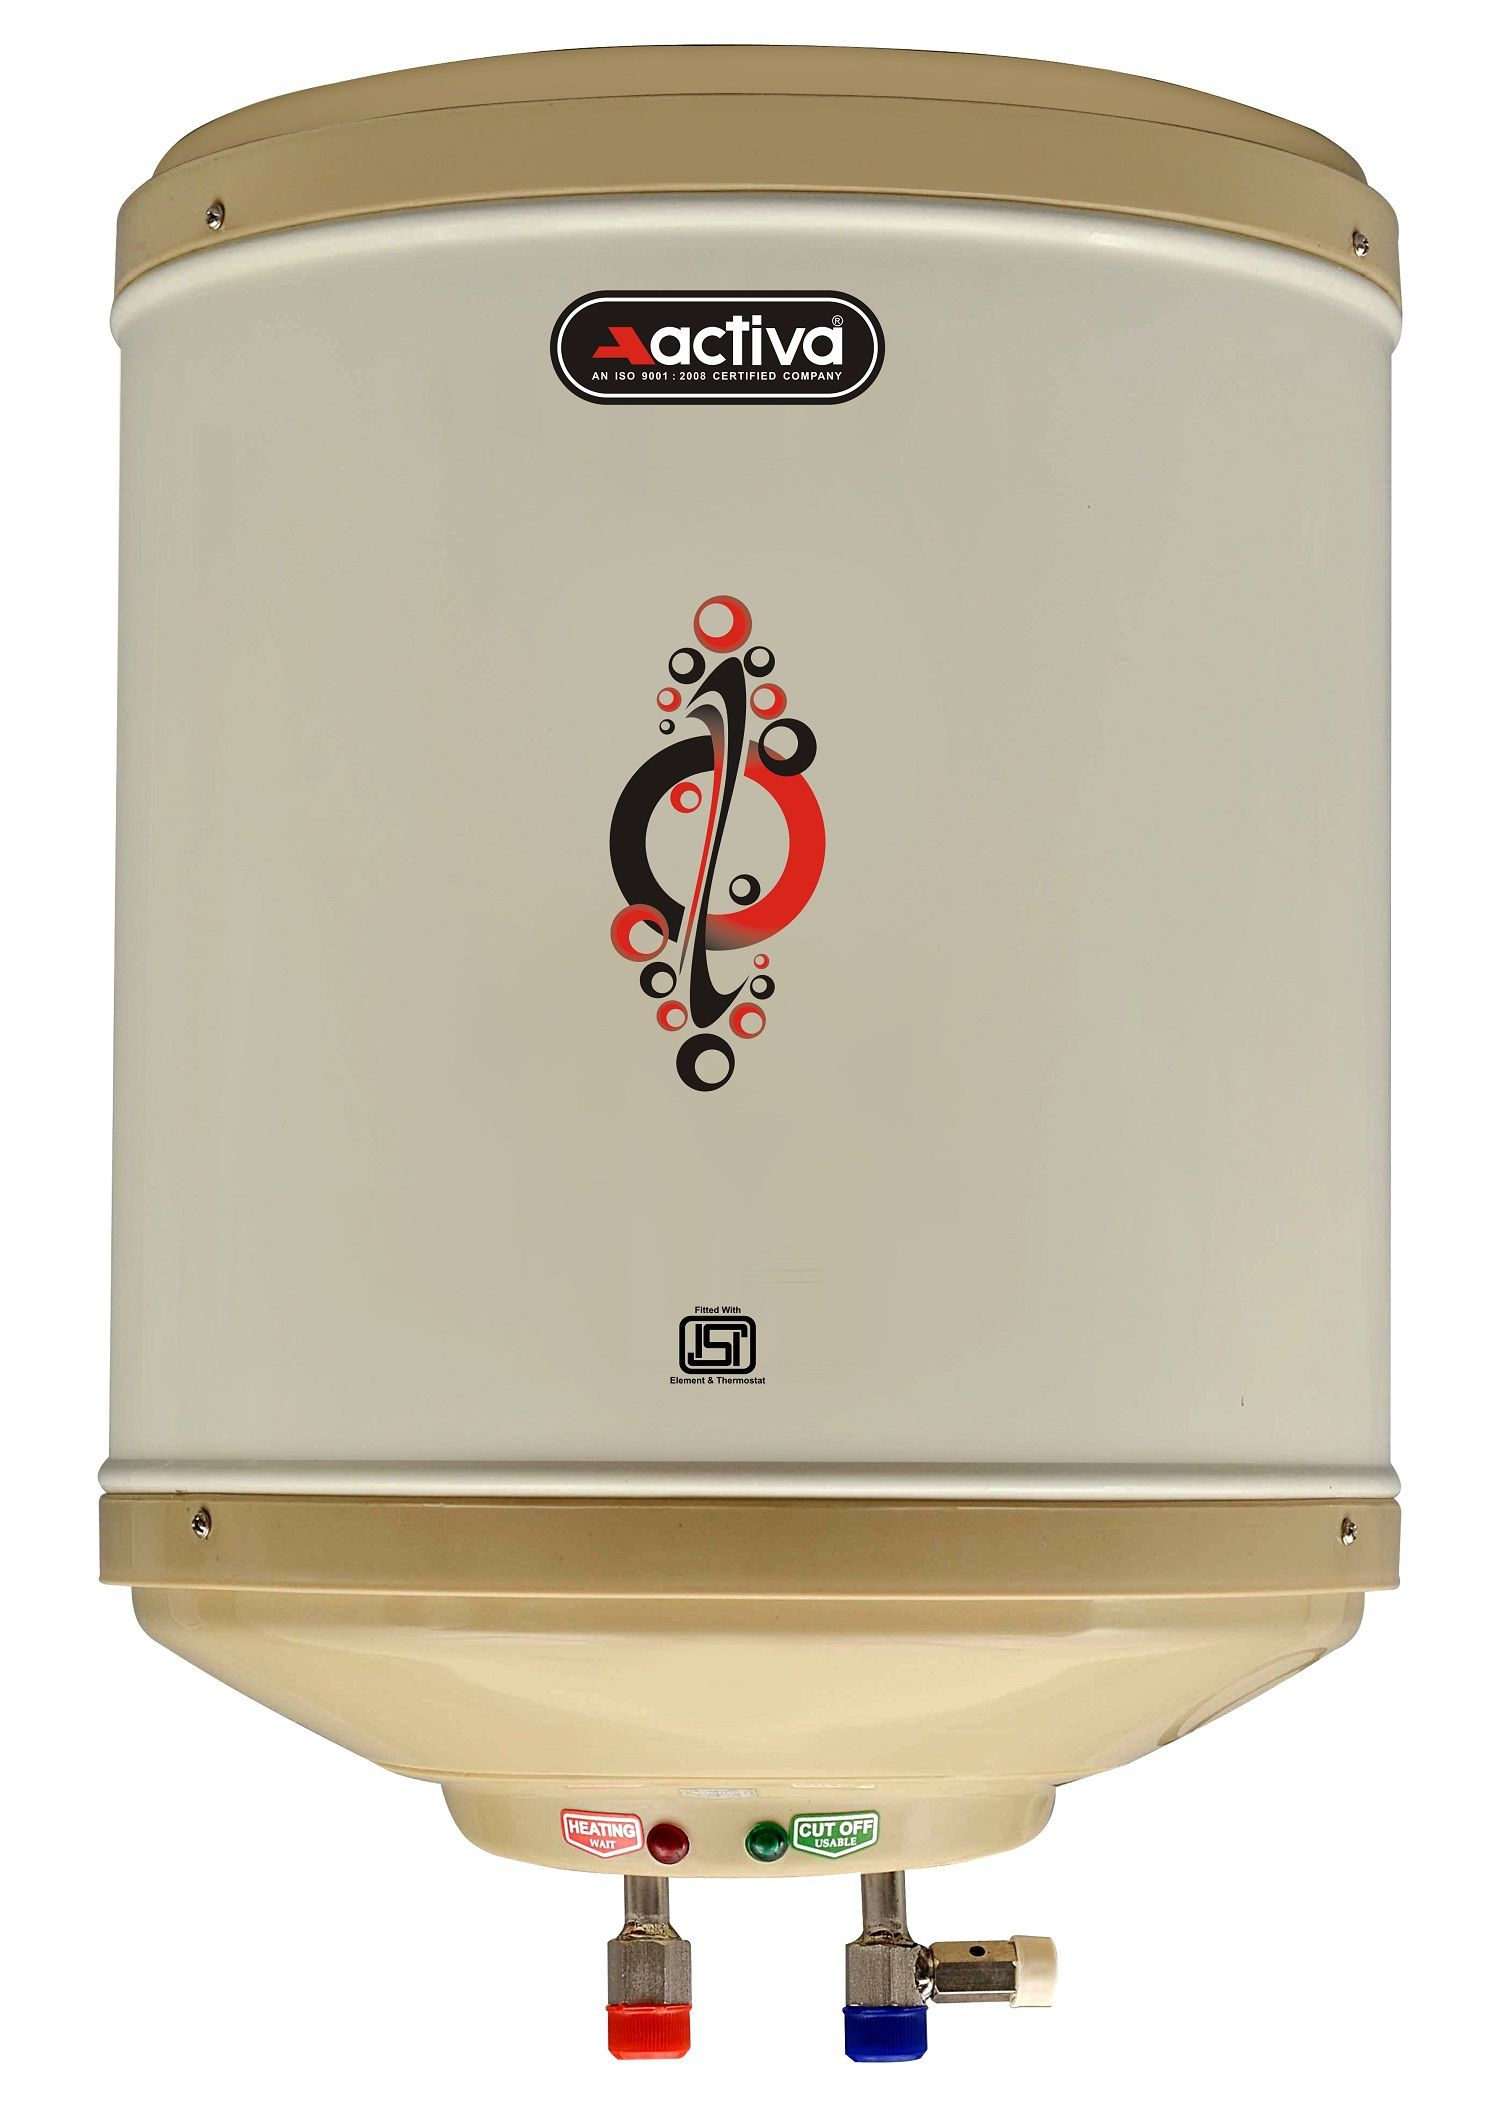 Activa 10 Ltr Amazon Instant Geyser Beige Snapdeal Rs. 3089.00